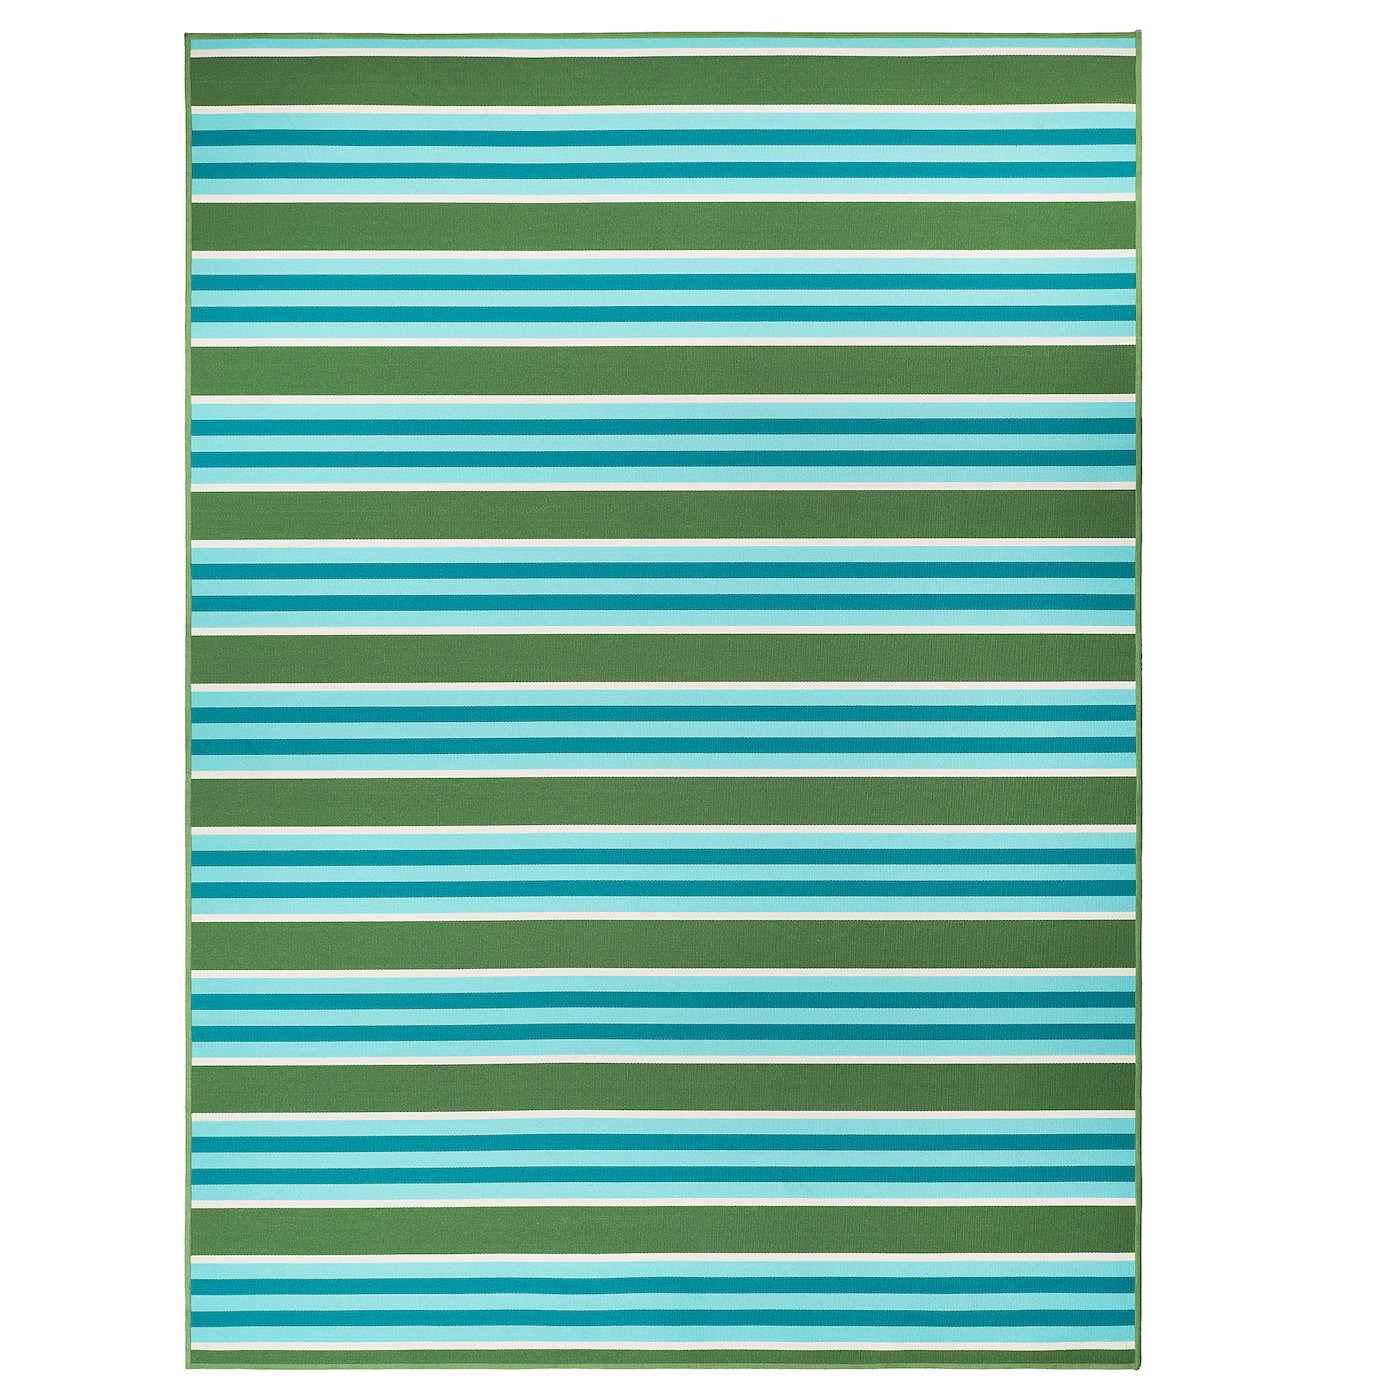 Sommar 2020 Rug Flatwoven In Outdoor Striped Green White 170x240 Cm Ikea